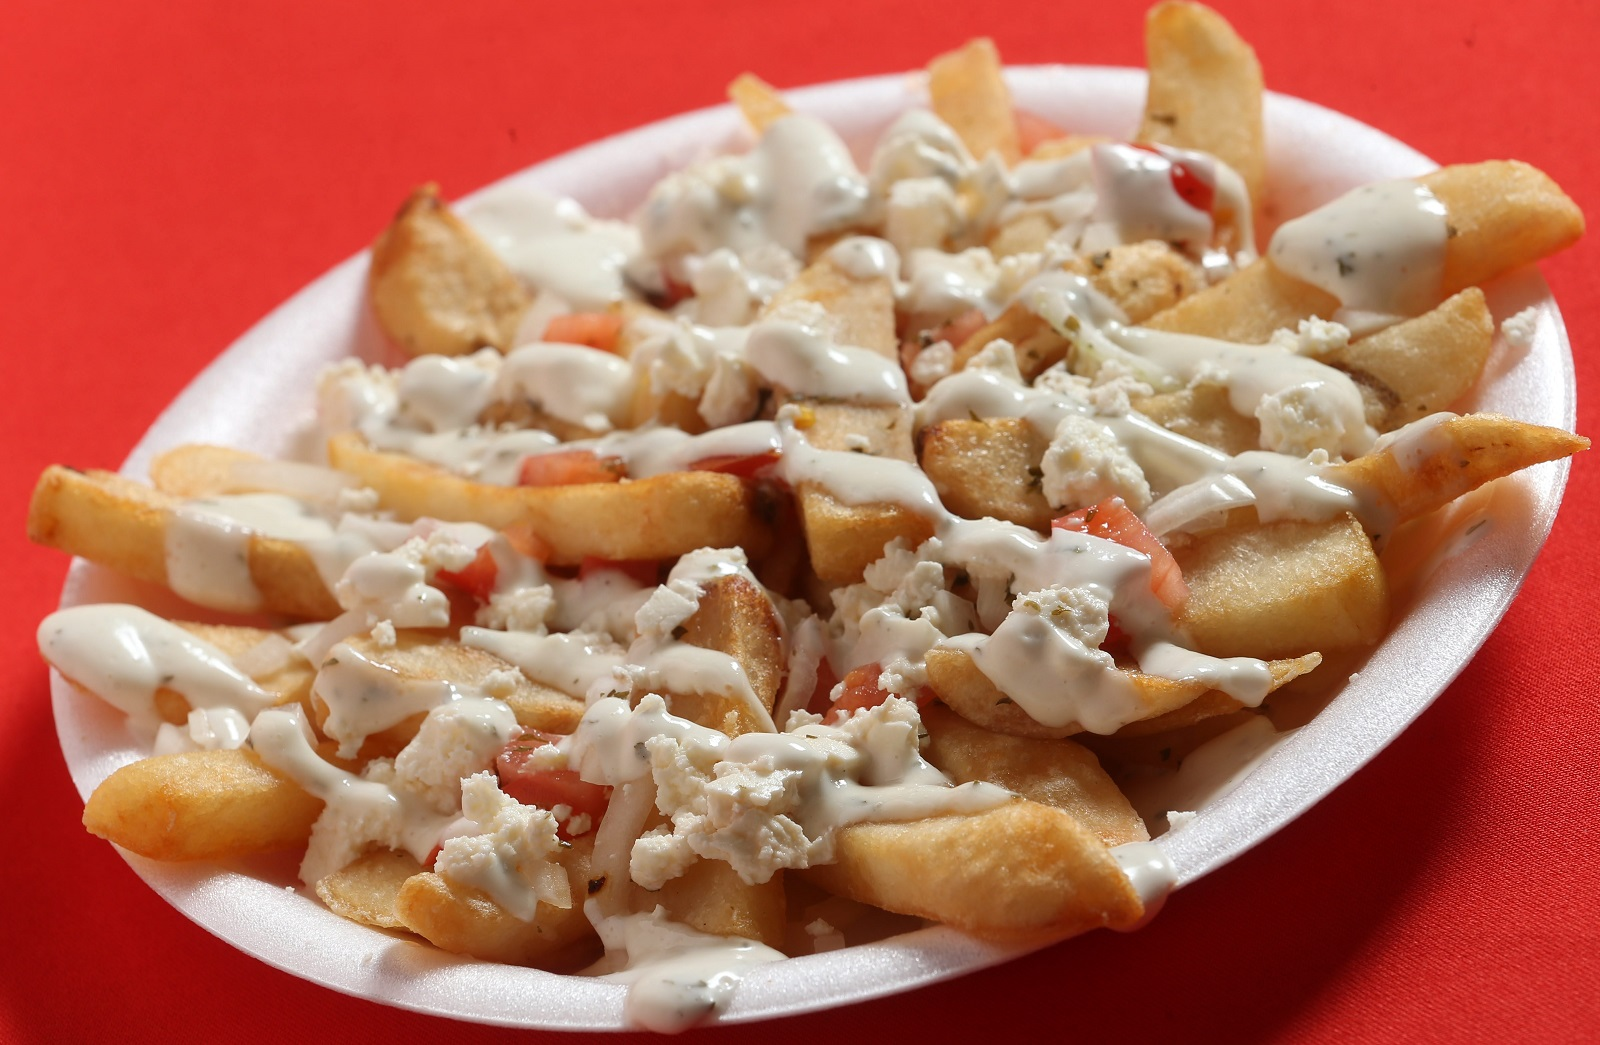 Venus Mediterranean is known for its Greek fries. (Sharon Cantillon/Buffalo News)